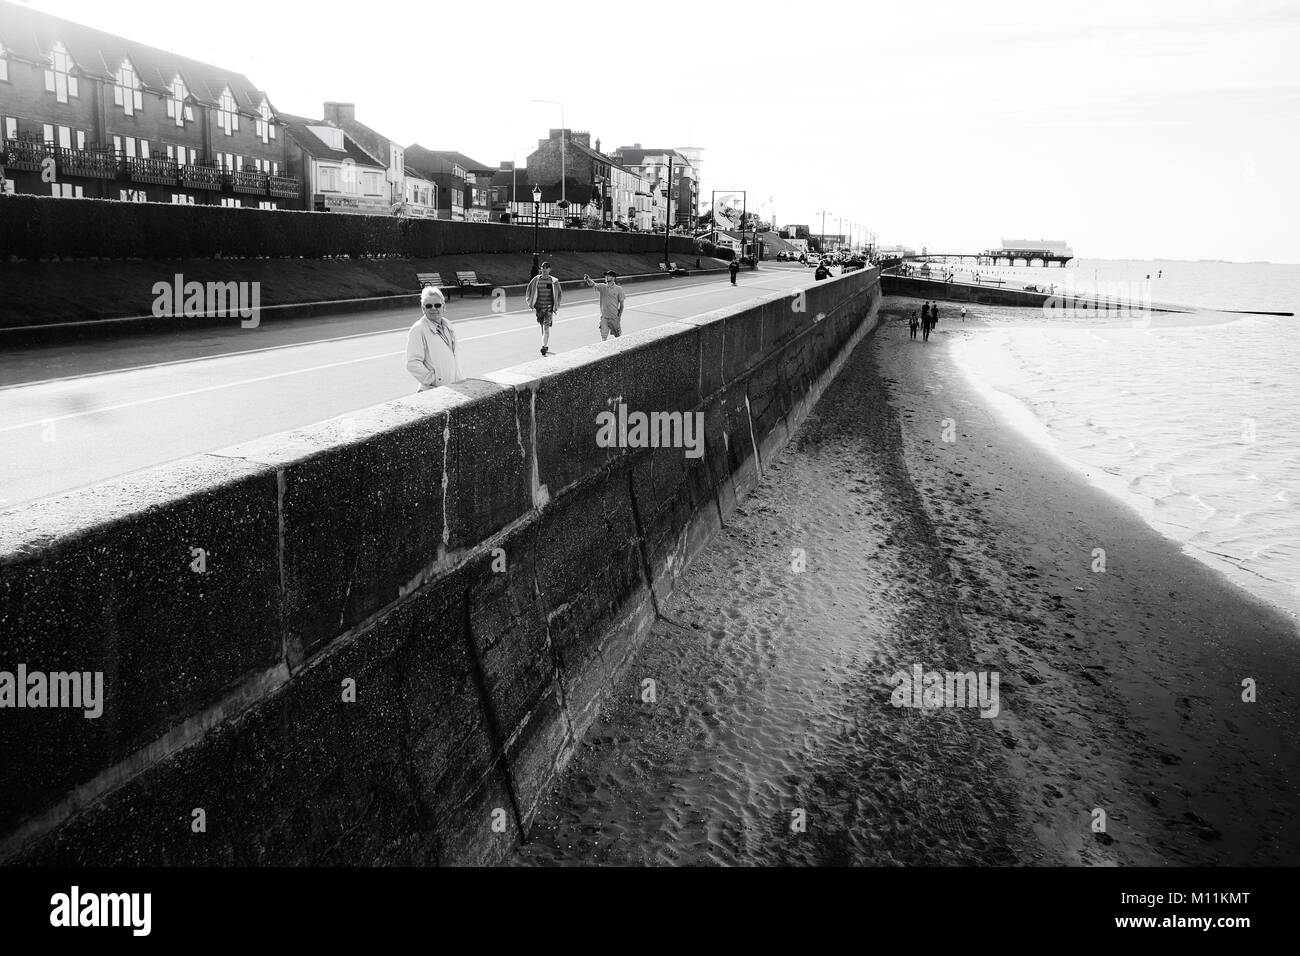 Cleethorpes beach - Stock Image